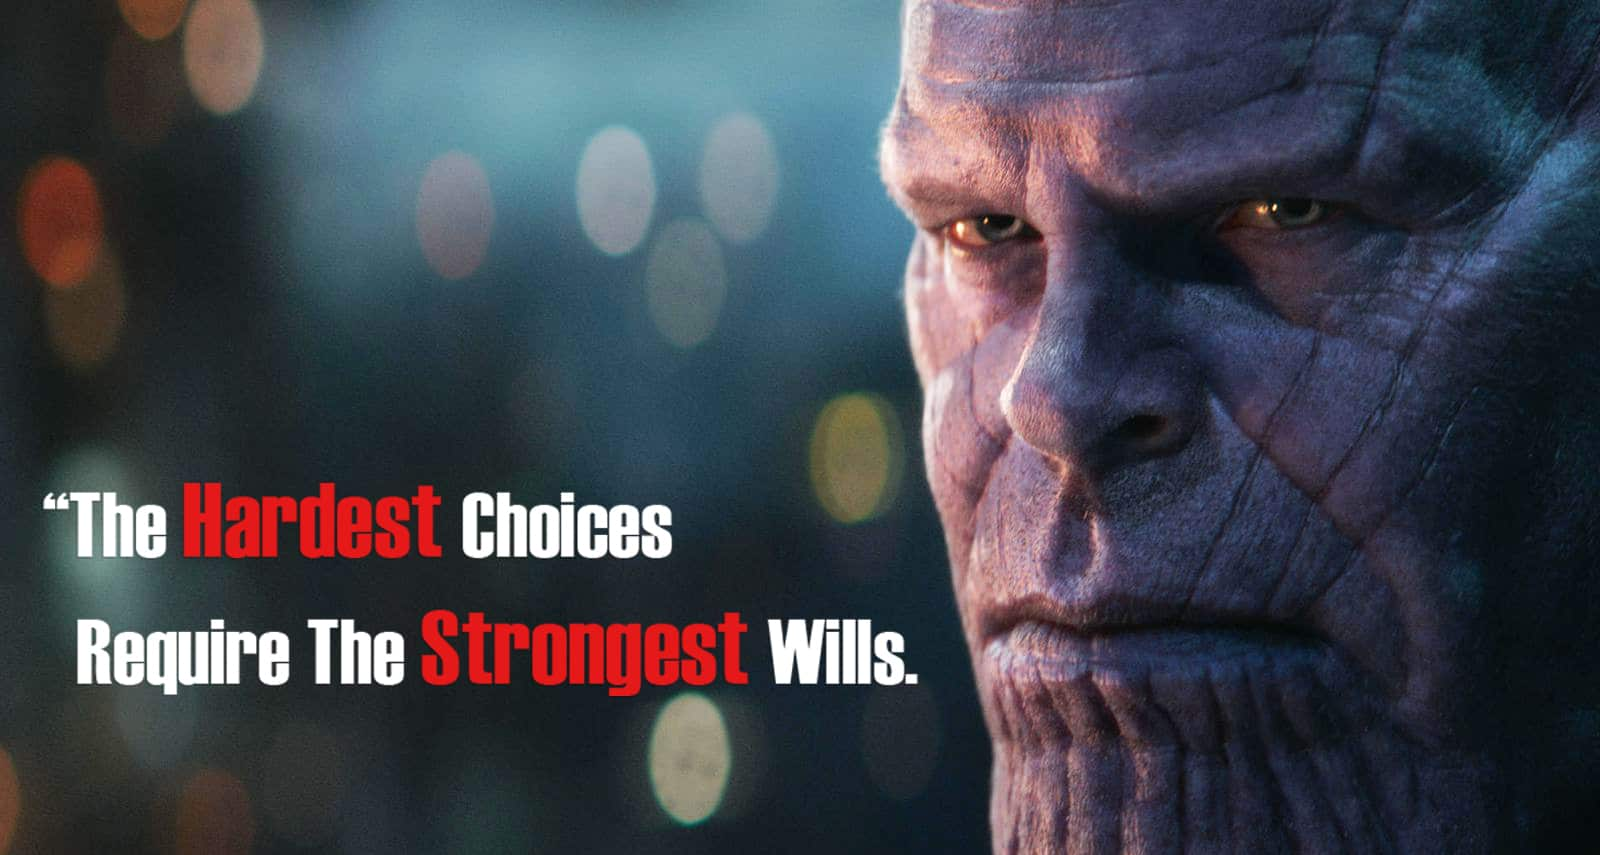 Thanos Quotes 16 Most Inspiring Thanos Quotes From Infinity War That Left A  Thanos Quotes